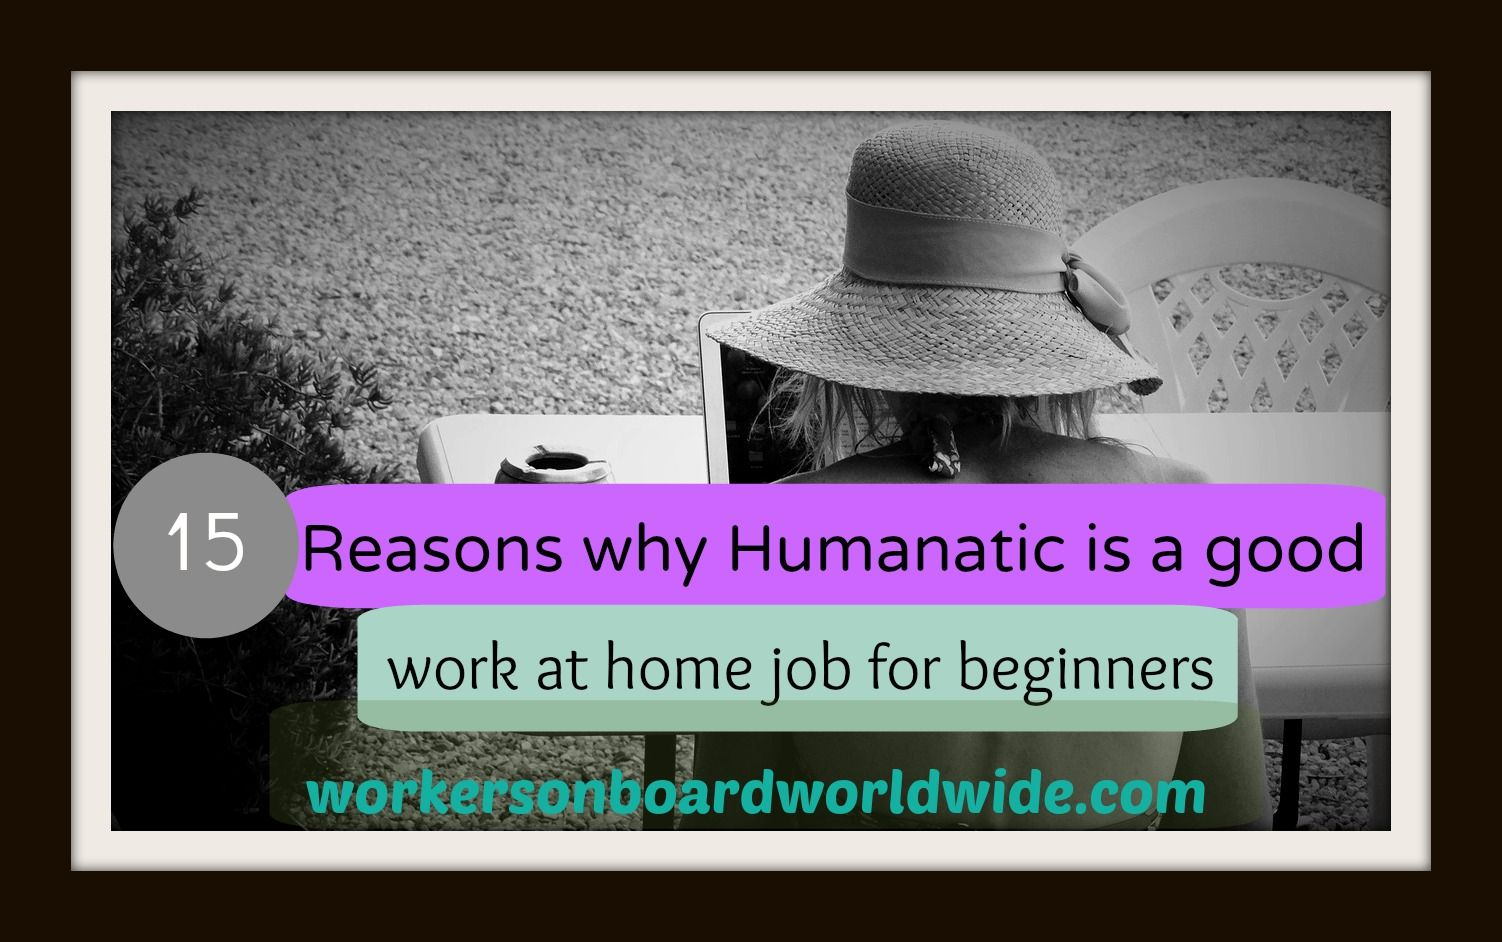 Many people desire a non-phone work at home job without having to talk to and service customers over the phone.  If you live outside the US and prefer a job that allows you to listen to calls rather than take them, Humanatic is definitely a company that you will want to apply to.  Humanatic has an ongoing need for call reviewers to do just that.